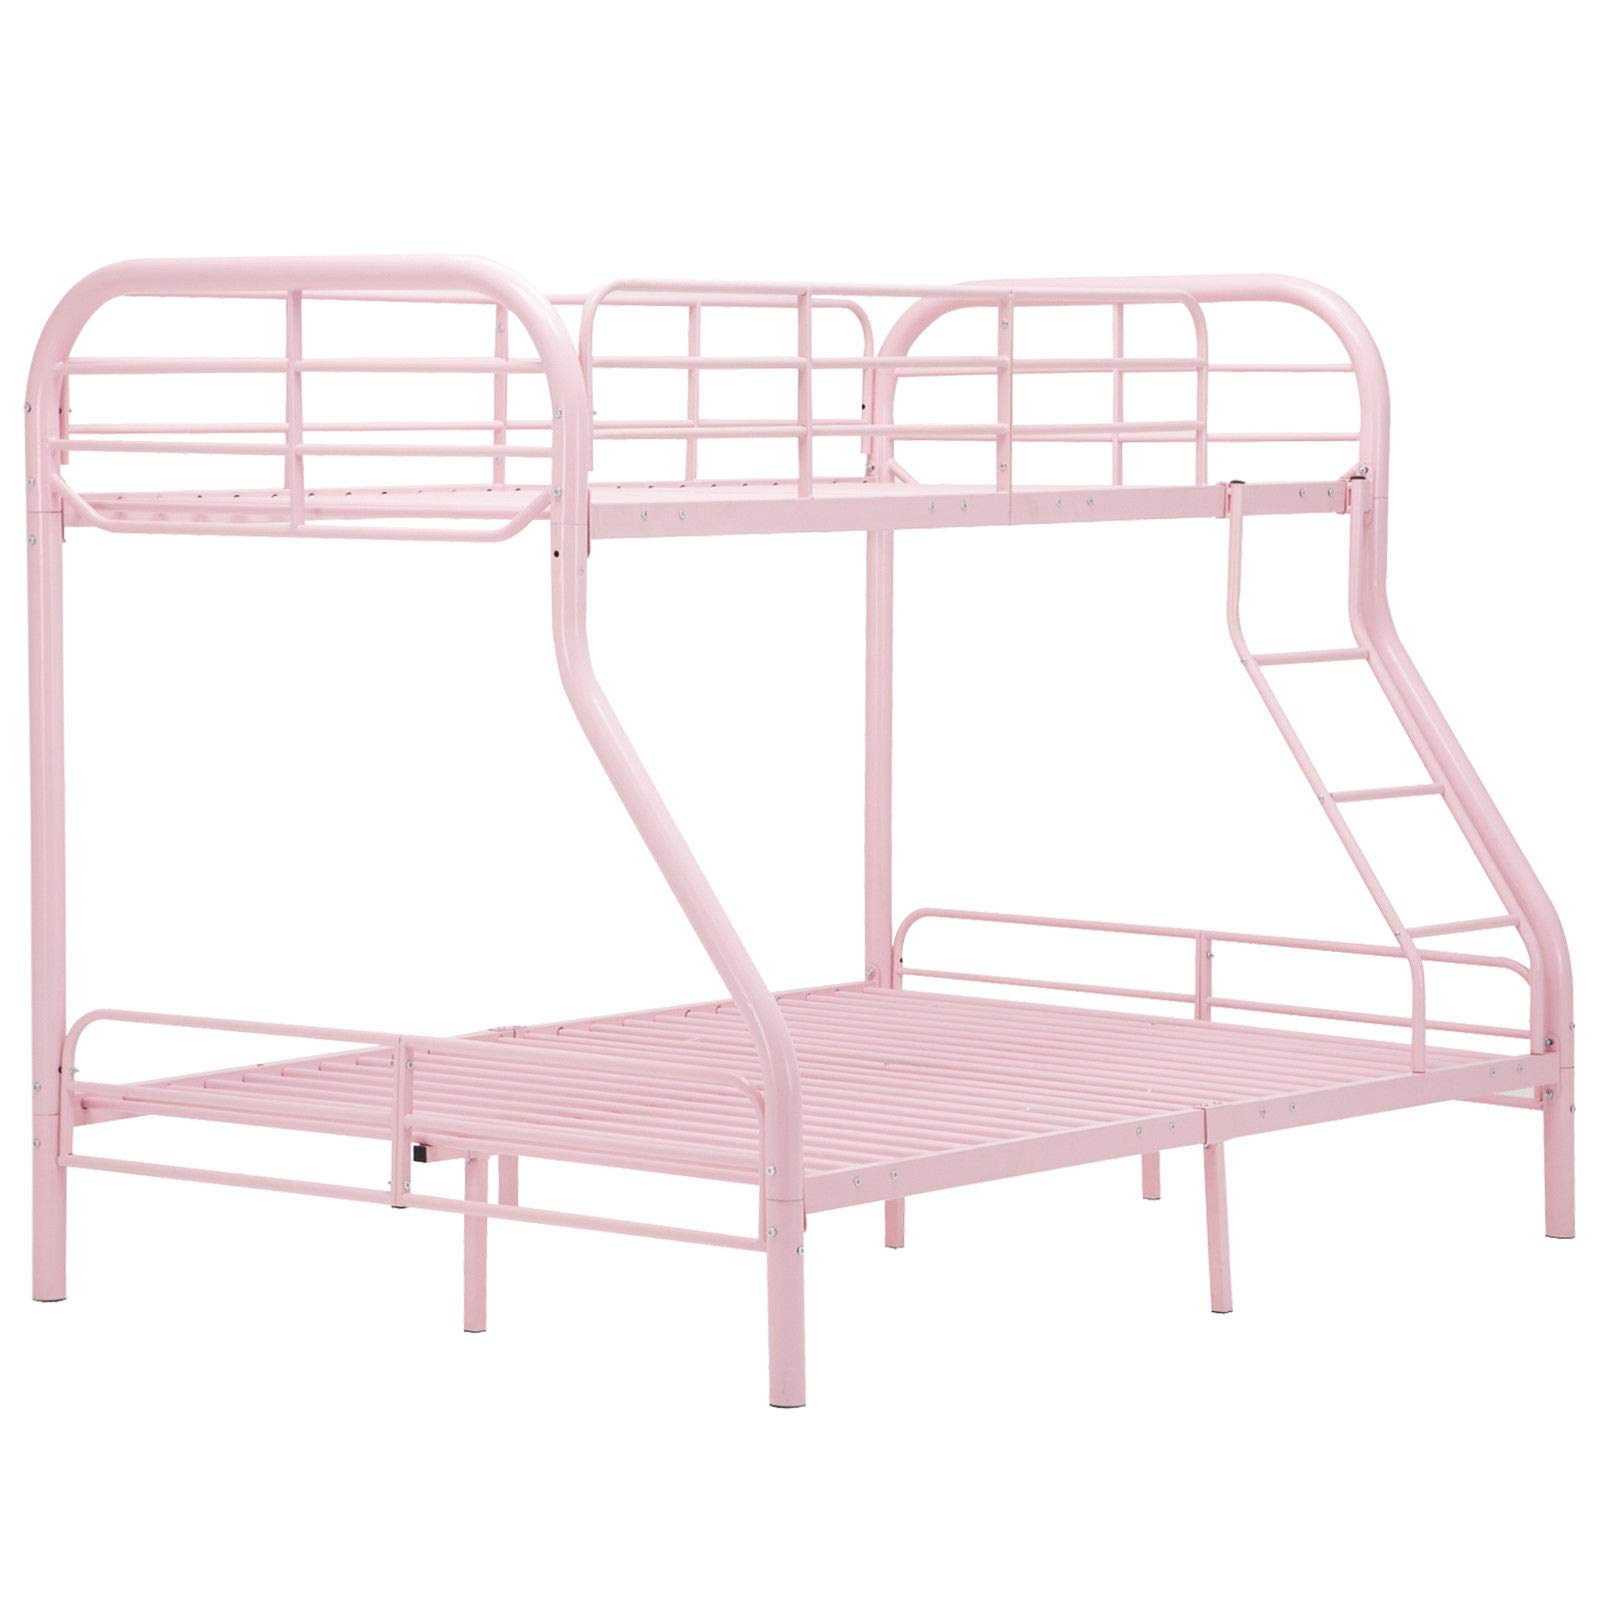 Cypressshop Metal Bunk Bed Metal Frame Twin Over Full Size Kids Teen Bedroom Guest Dormitory Sleepers Bedroom Sleeping with Ladders Safety Pink Color Home Furniture